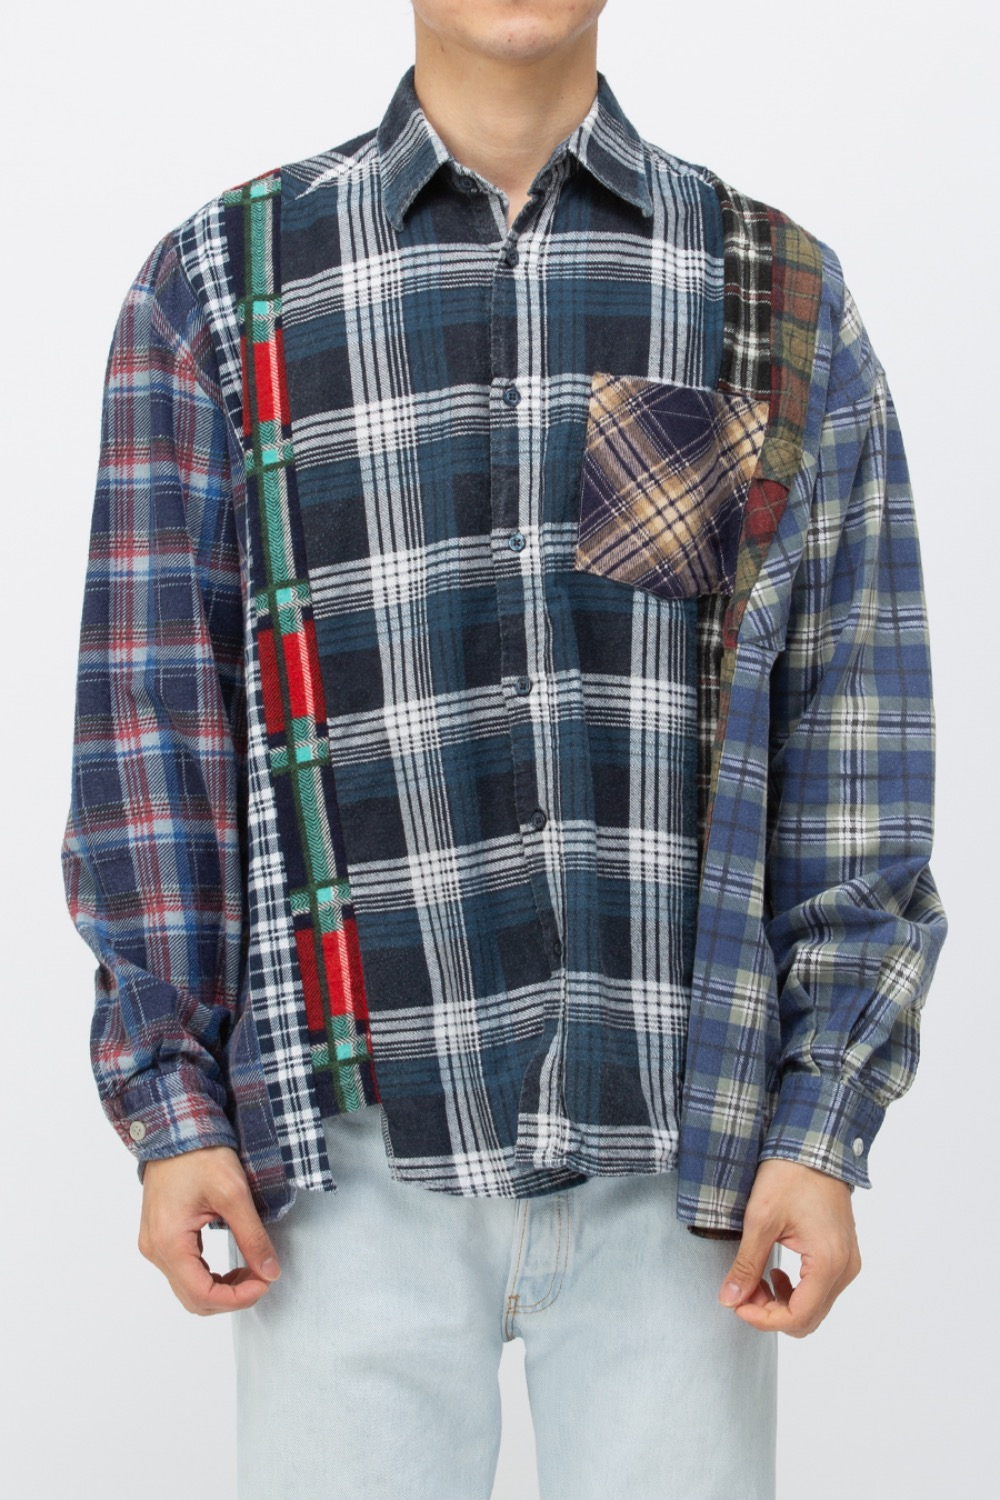 (WIDE-5)REBUILD BY NEEDLES FLANNEL SHIRT - 7CUTS WIDE SHIRT